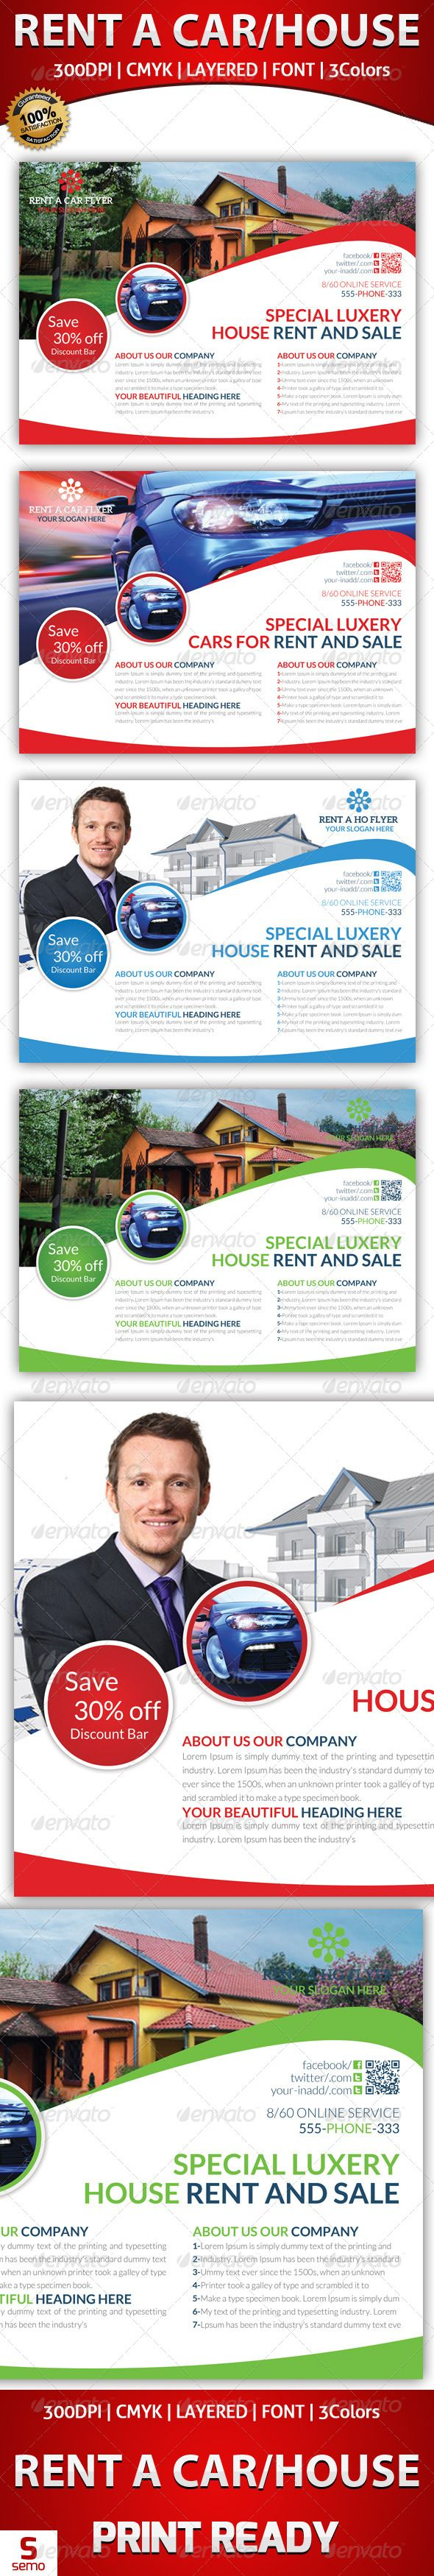 best ideas about commercial buildings for rent rent a house and car flyer template graphicriver rent a house and car flyer template